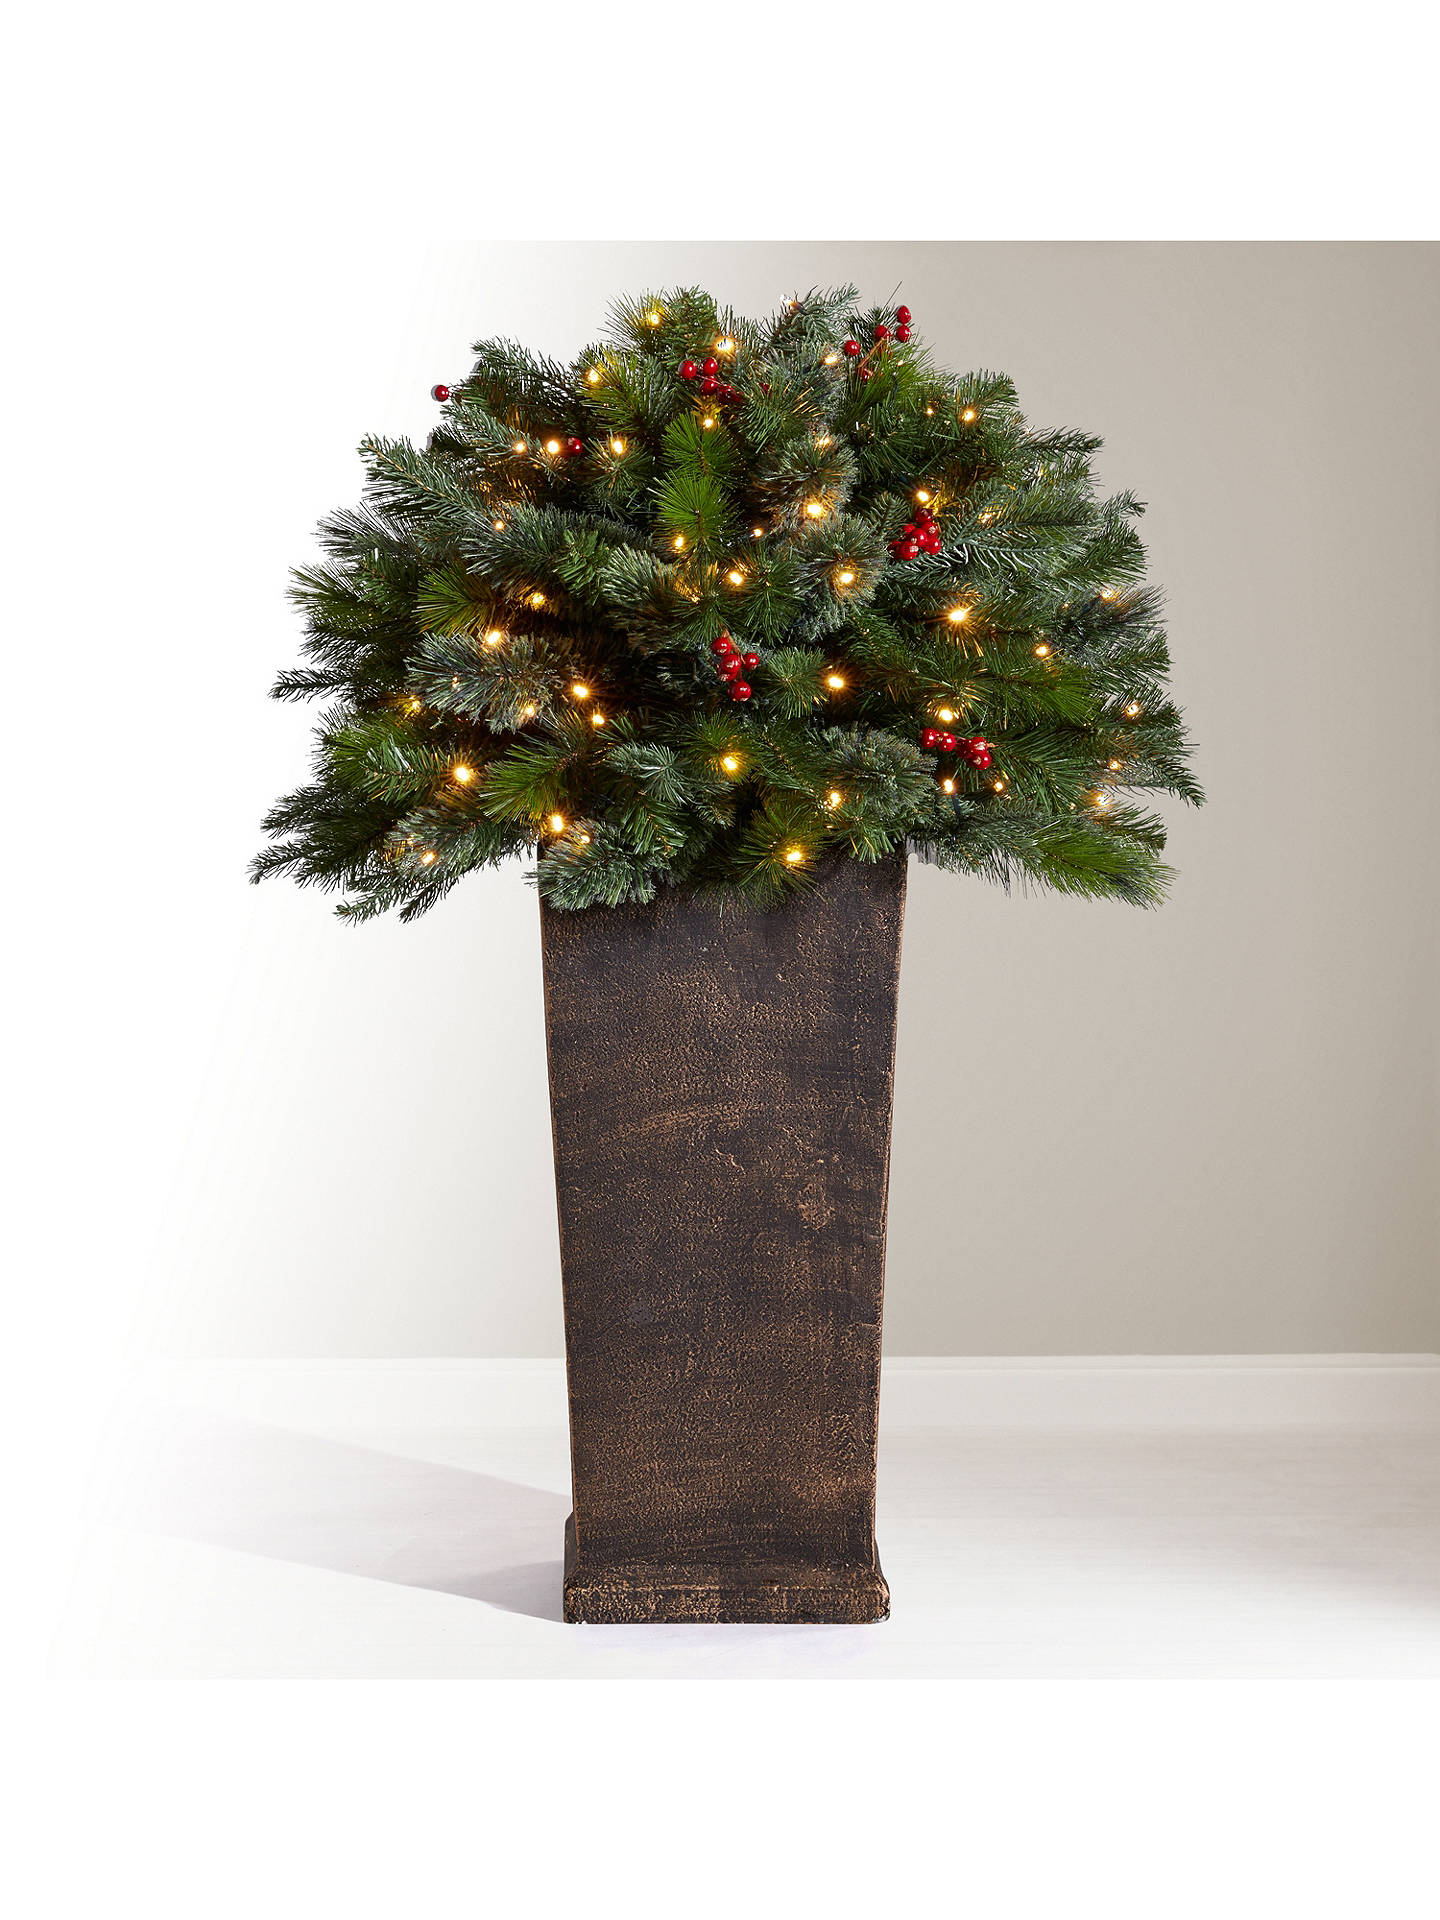 John Lewis Christmas Tree.John Lewis Partners Balmoral Berry Bush Pre Lit Christmas Tree 3ft